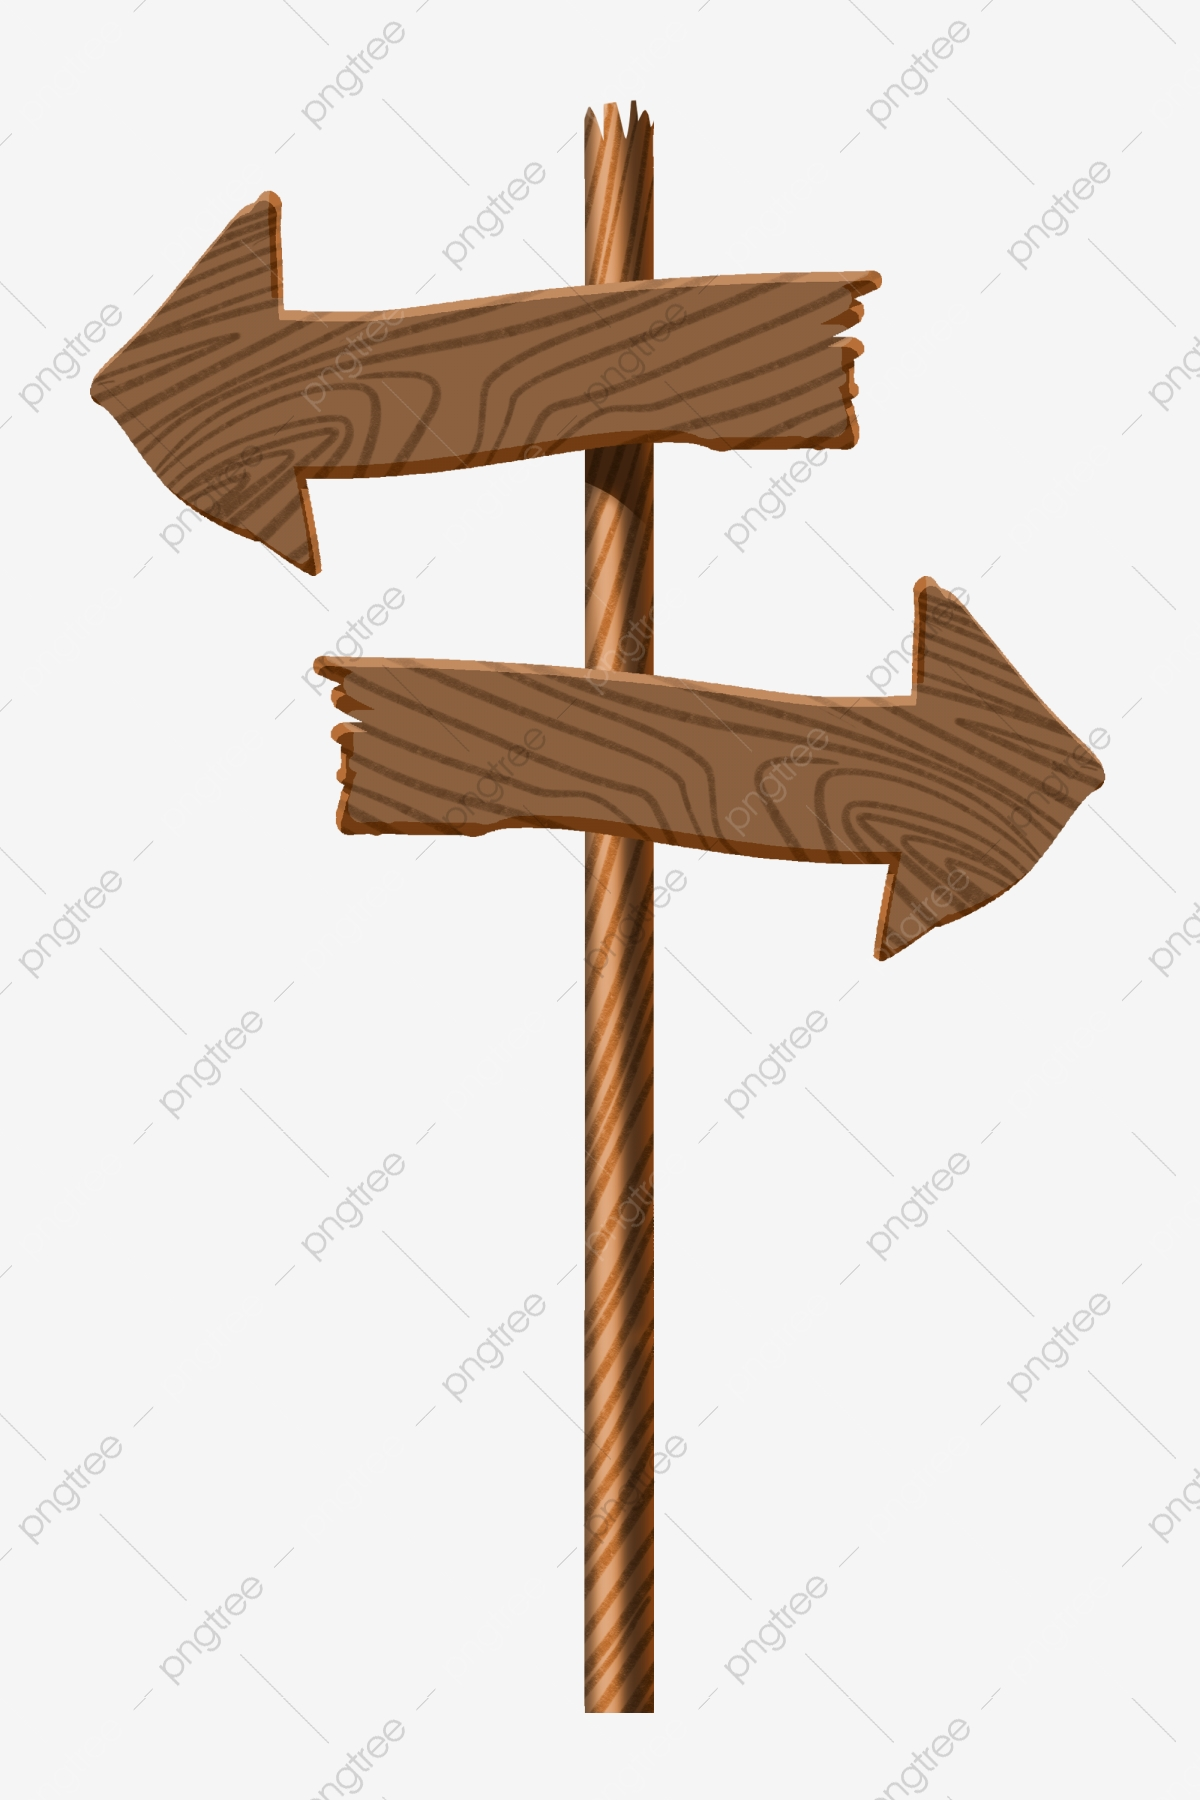 clip art freeuse Arrow sign clipart. Wooden illustration wood signs.